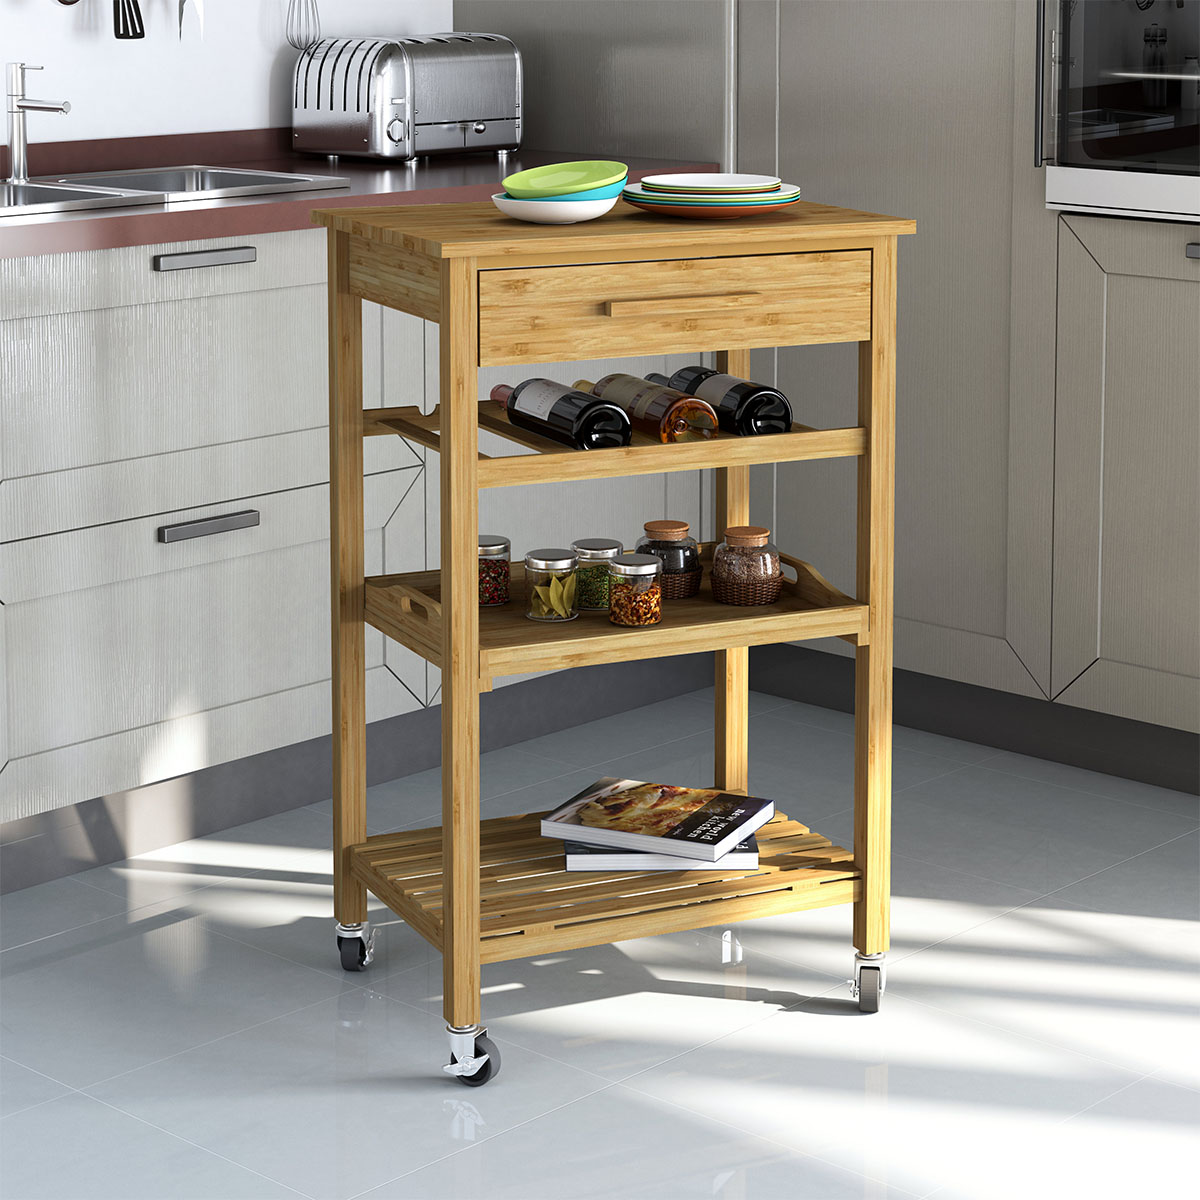 Merveilleux Rolling Bamboo Kitchen Cart Island Trolley, Cabinet W/ Wine Rack Drawer  Shelves